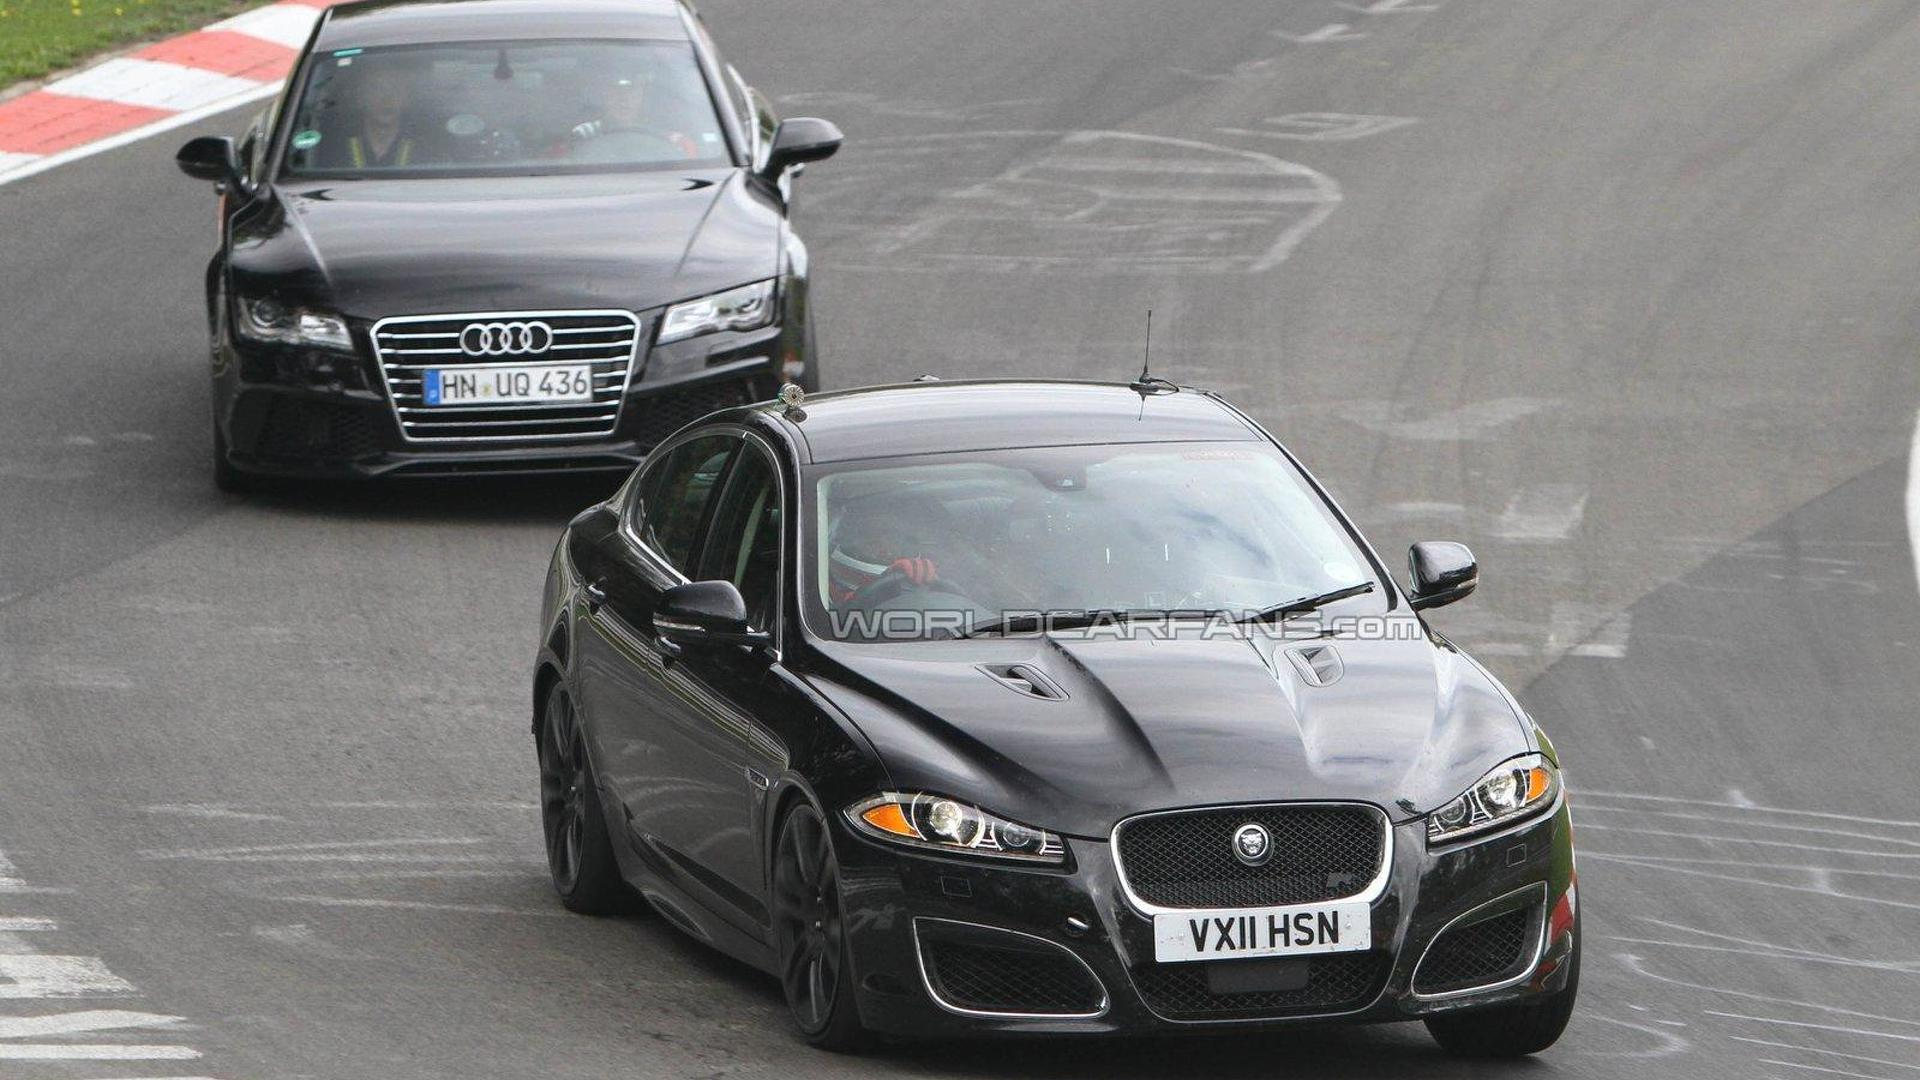 Jaguar XFR-S coming to LA Auto Show - report